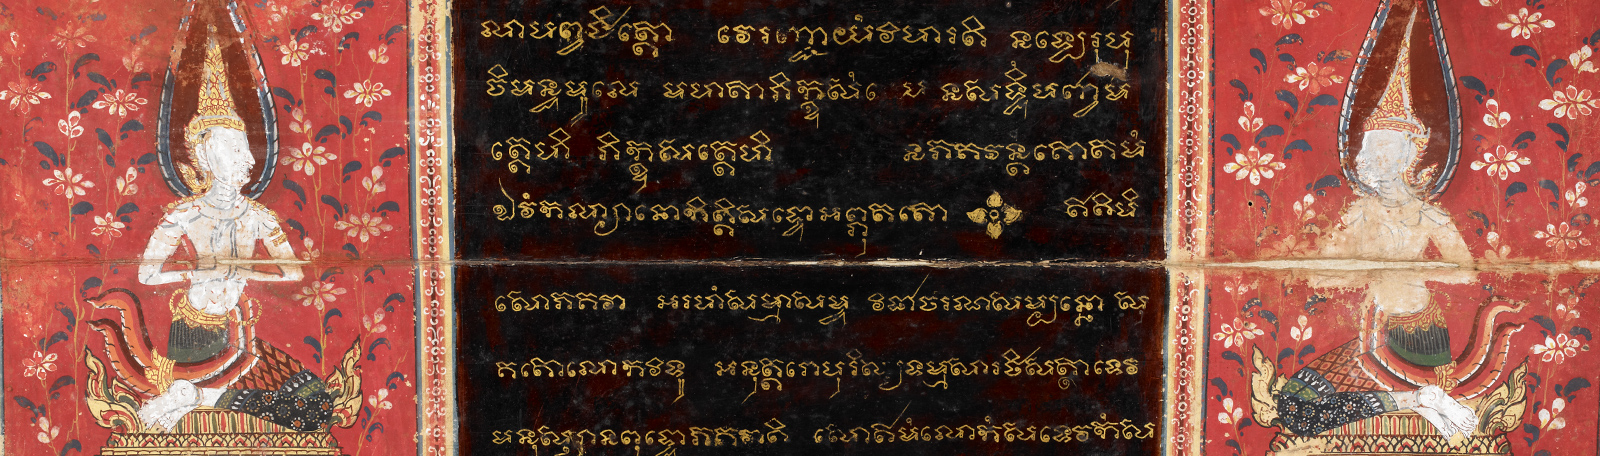 A 19th-century Thai folding book